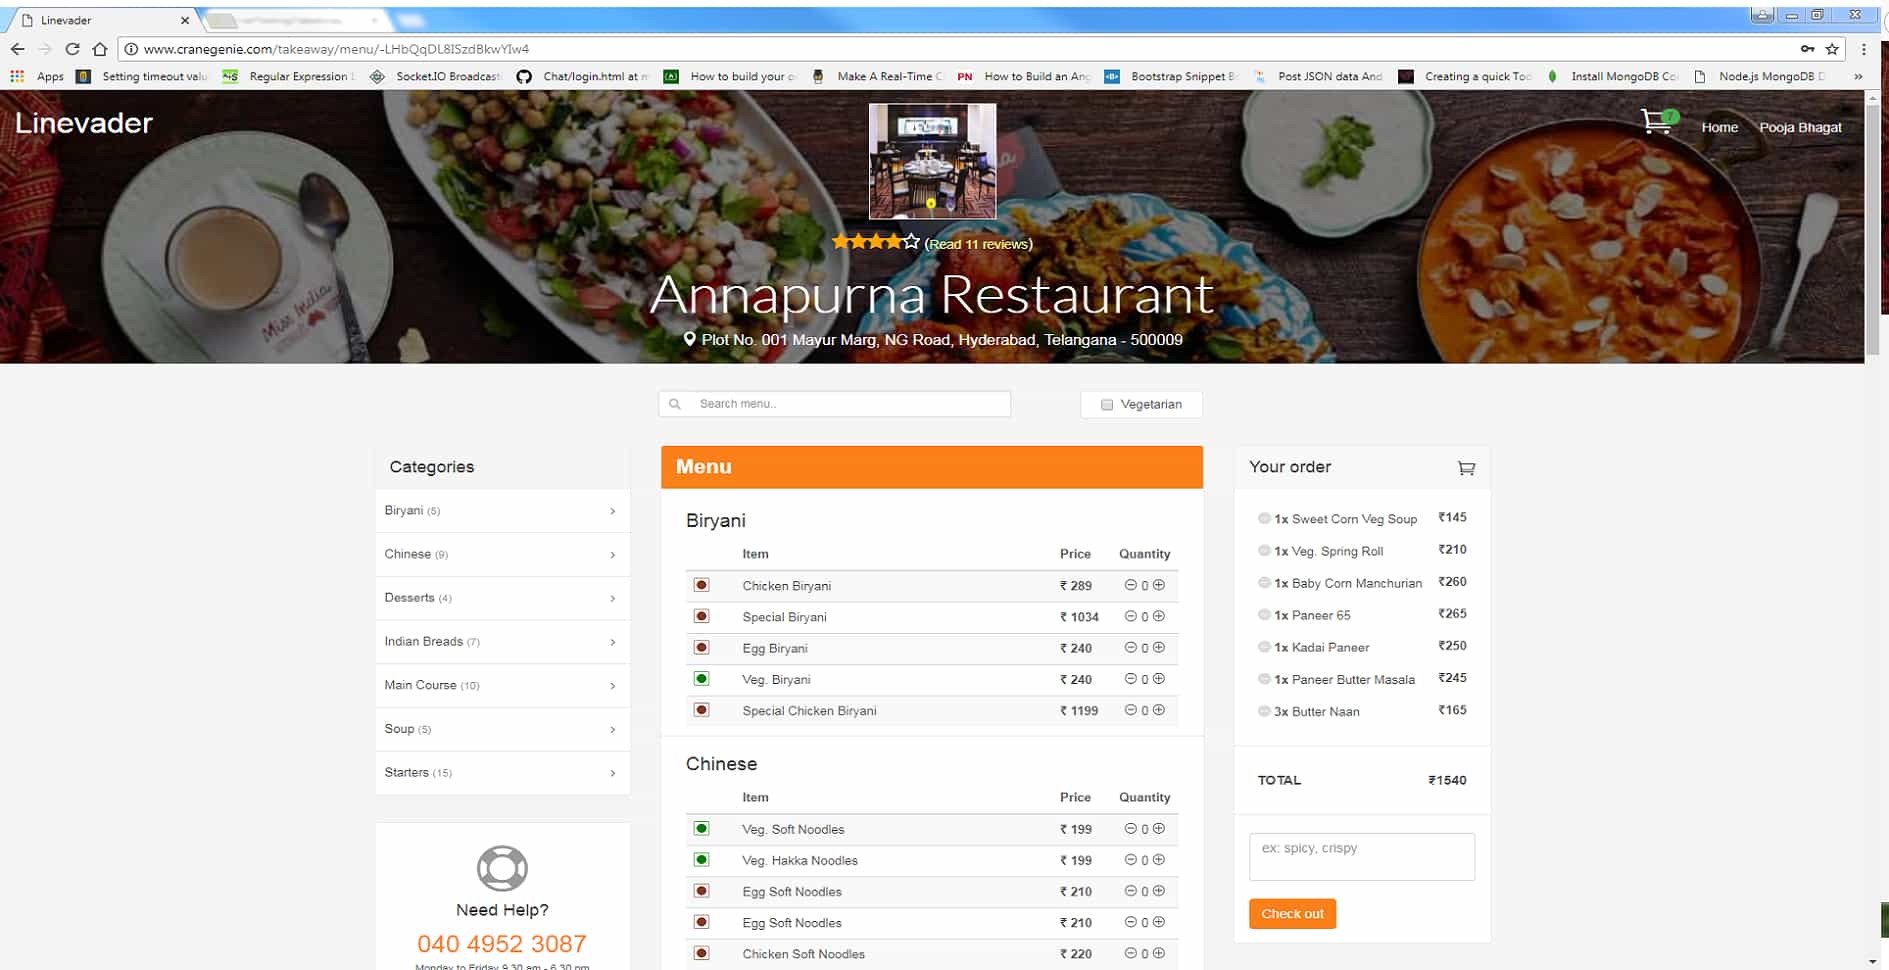 FDES Web application development services - Linevader - Food Take Away App